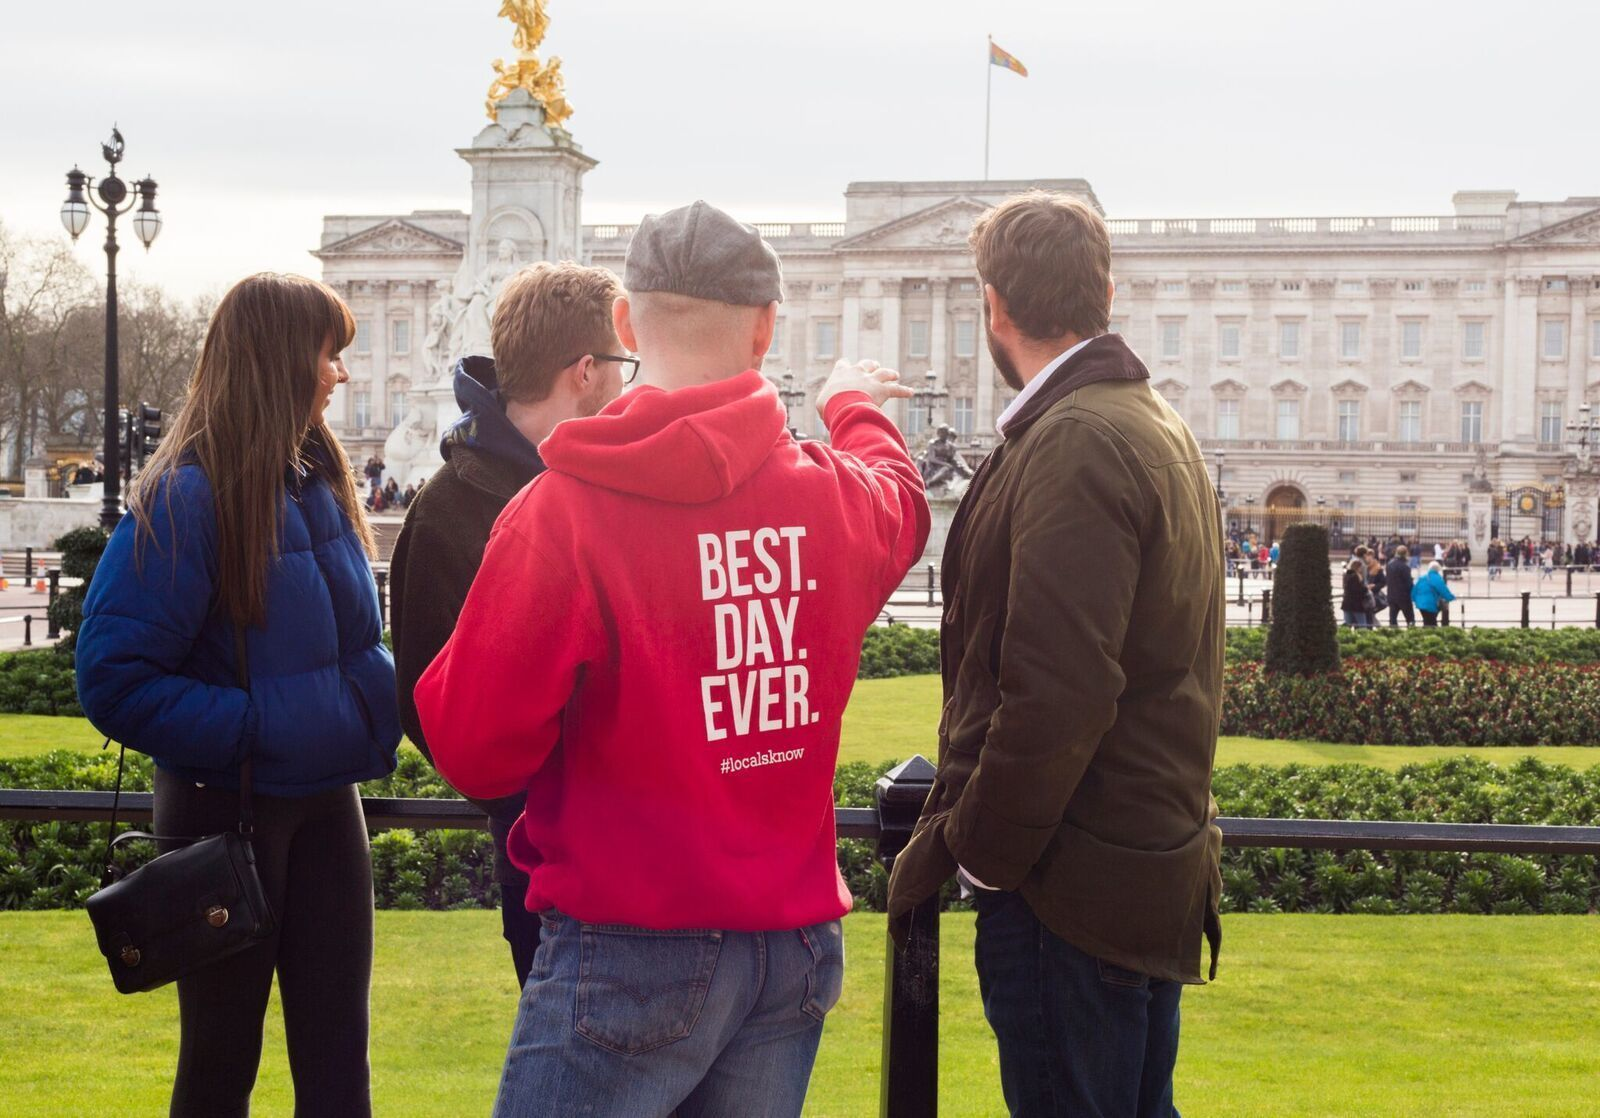 Tour guide with group in London